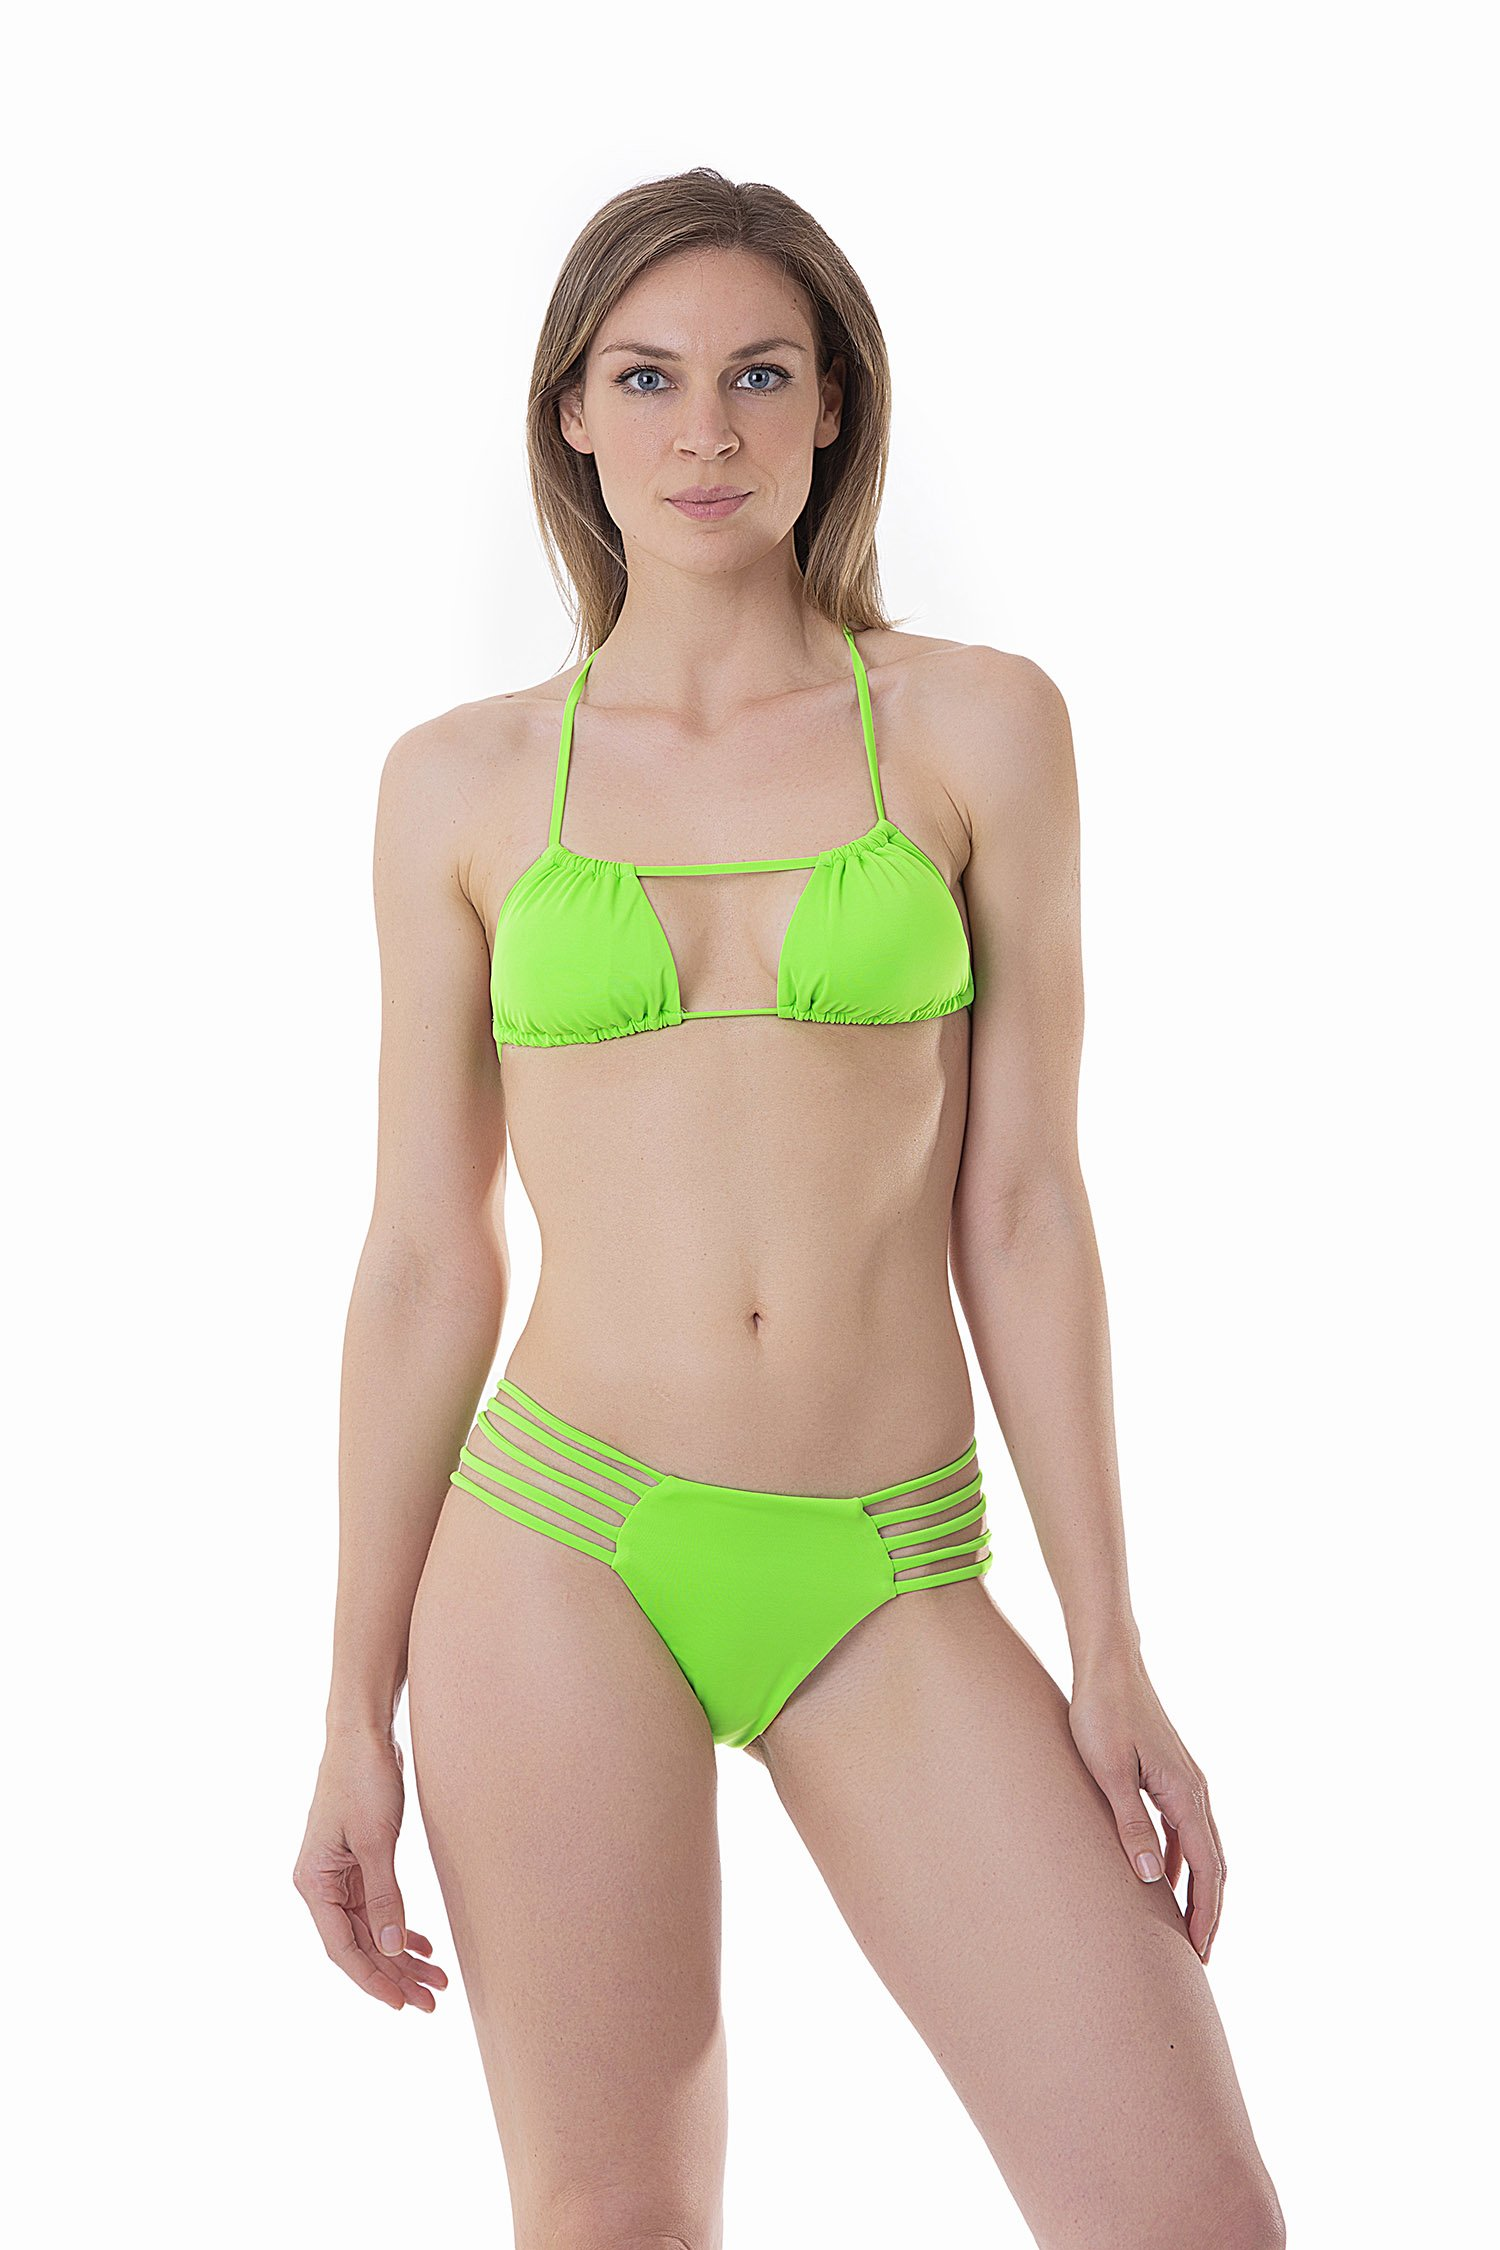 FLUORESCENT TRIANGLE BIKINI WITH CROSSED TIE AND BOTTOM WITH SIDE CUT OUT STRINGS - Intensity Verde Fluo